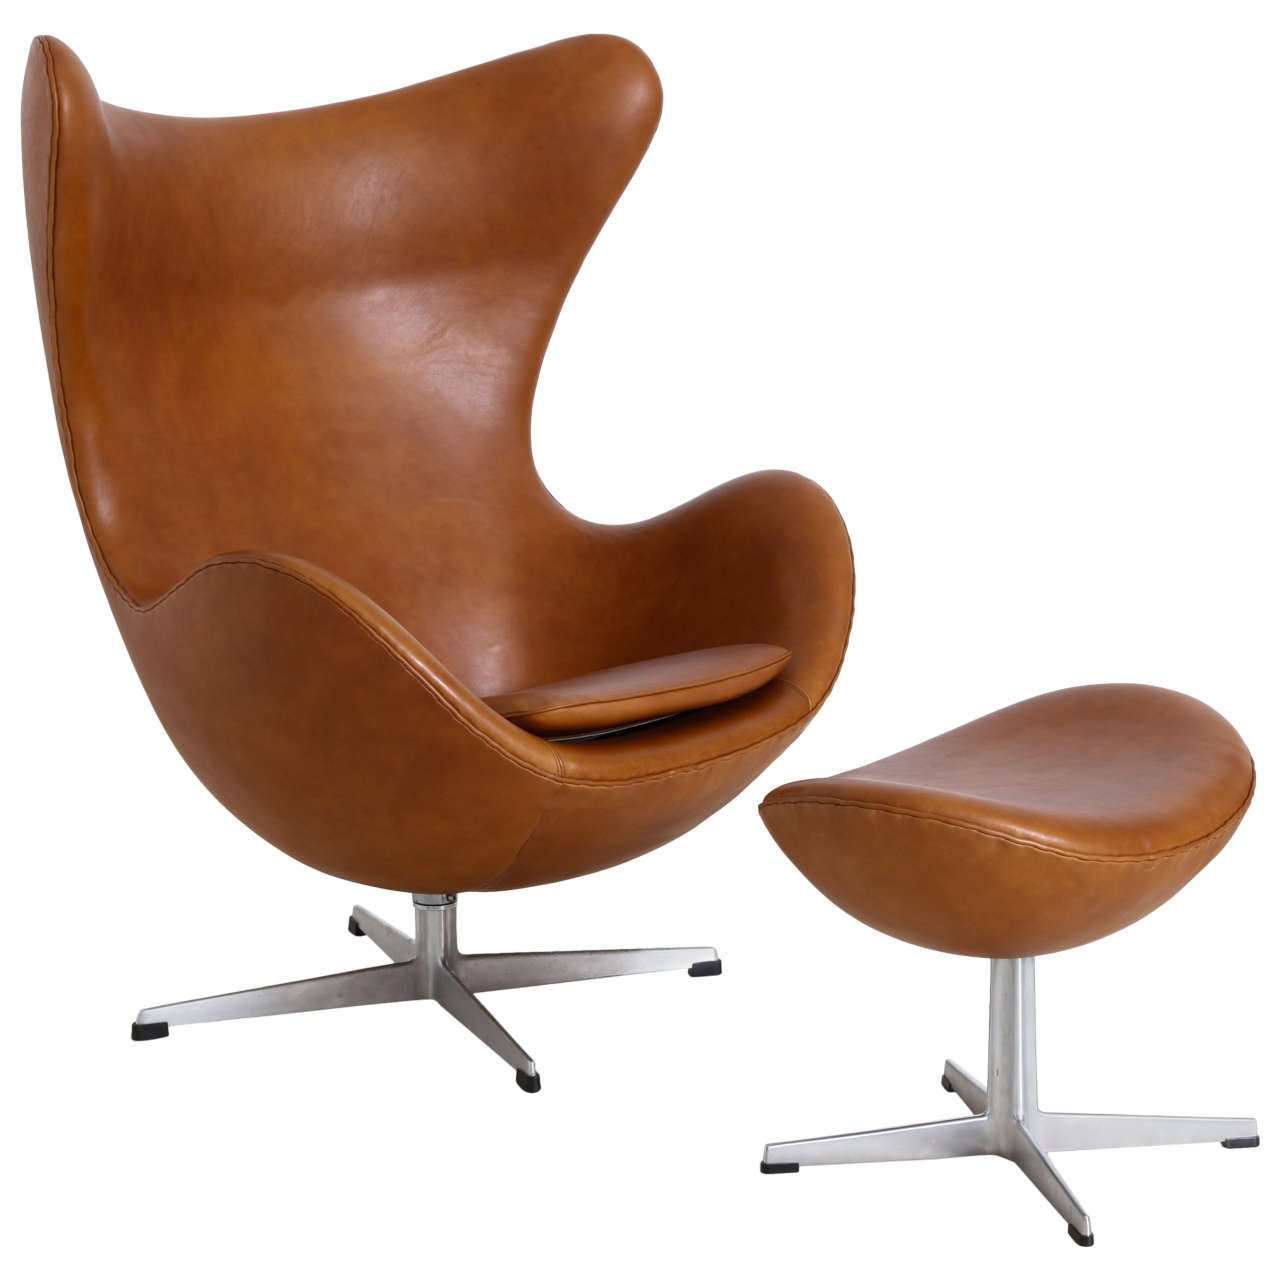 arne jacobsen egg chair with ottoman. Black Bedroom Furniture Sets. Home Design Ideas